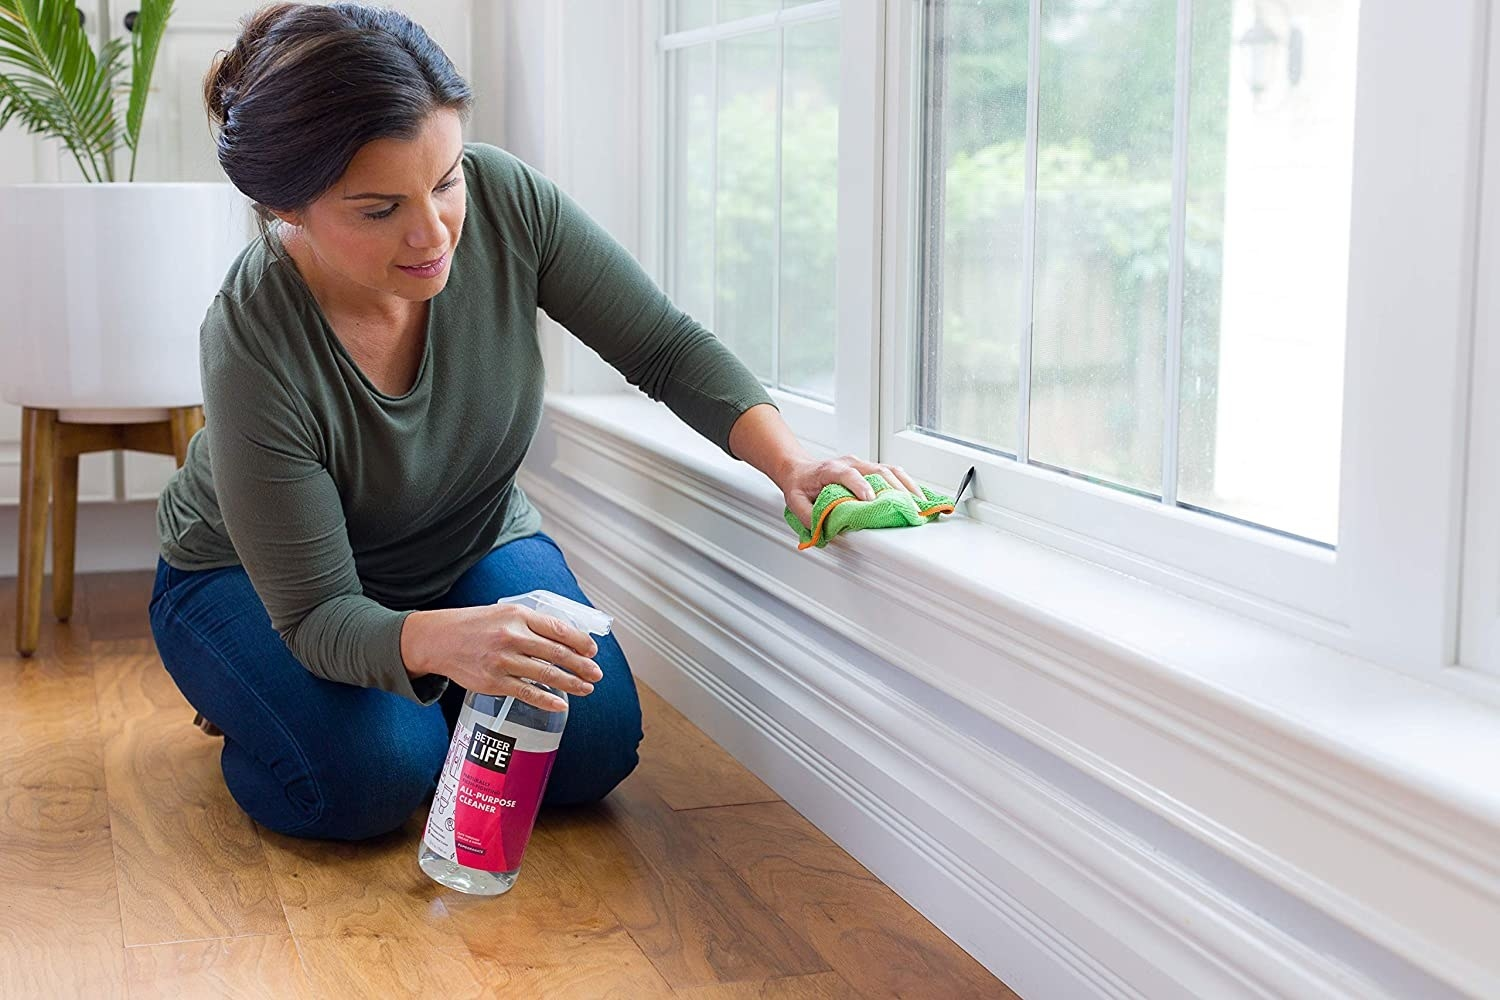 A person spraying the window ledge and baseboards with an all purpose cleaning solution